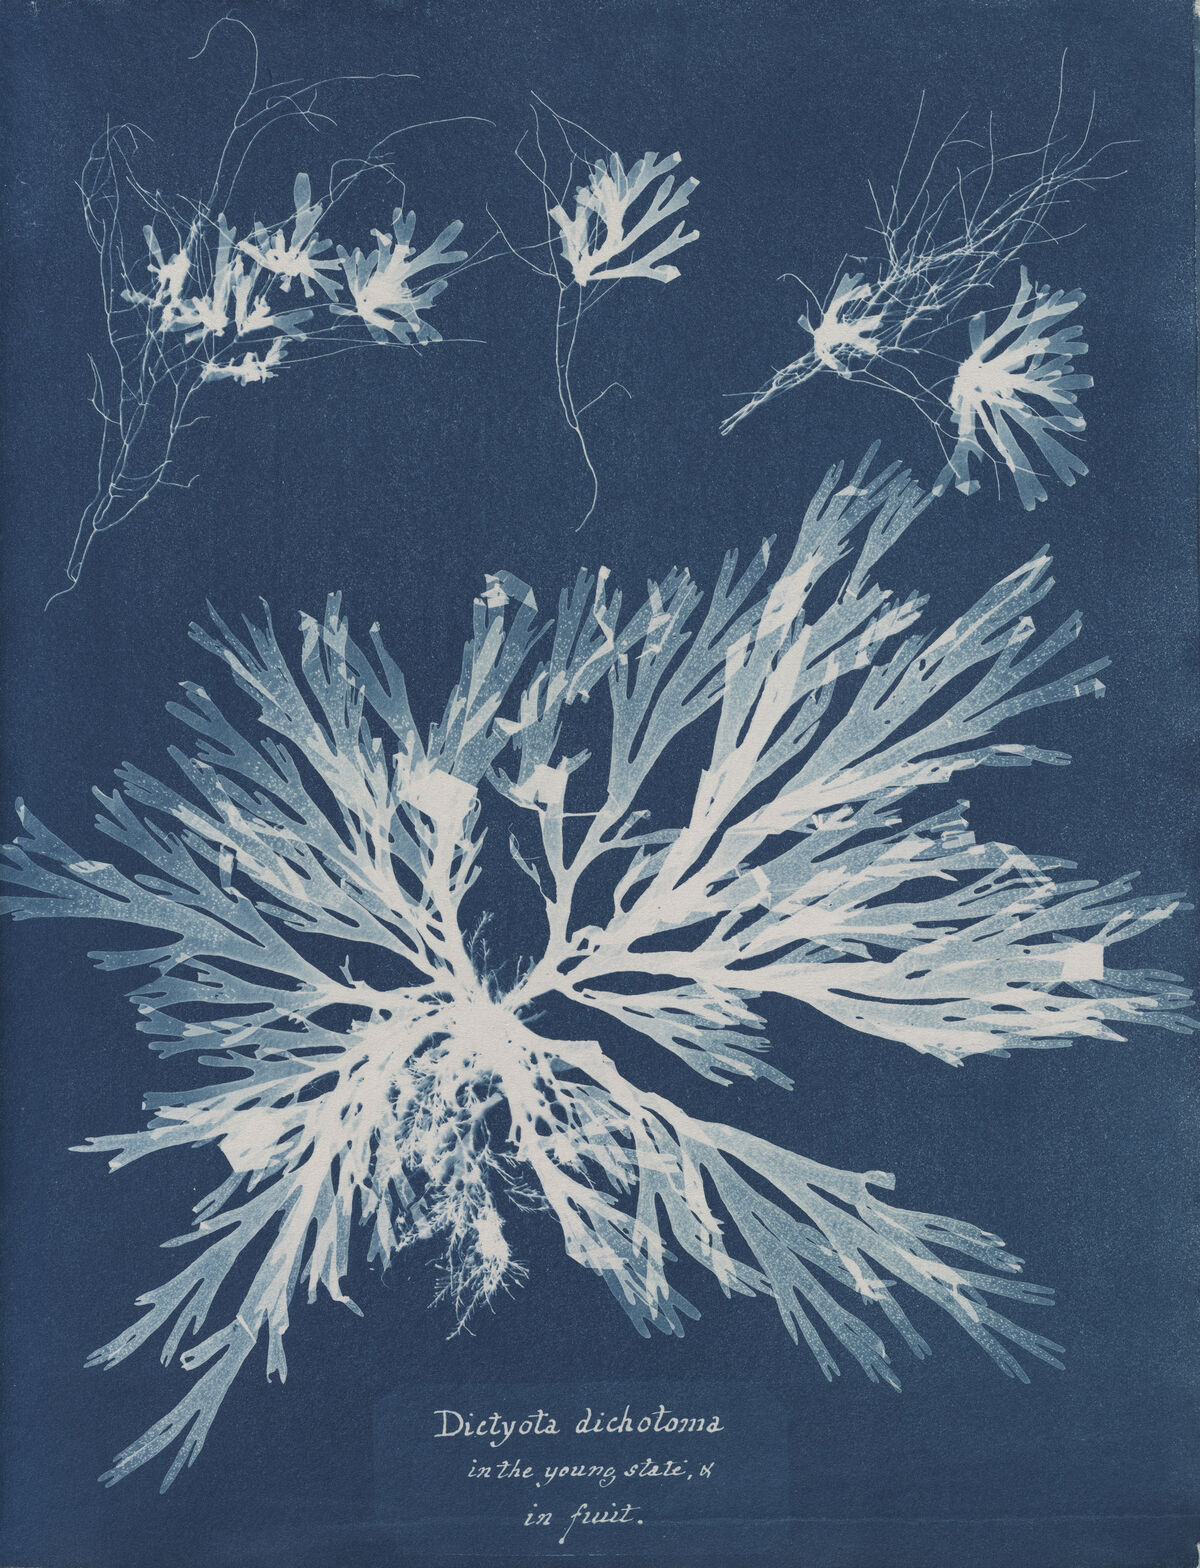 Anna Atkins, Dictyota dichotoma, in the young state & in fruit, from Part XI of Photographs of British Algae: Cyanotype Impressions, 1849-1850. Courtesy of The New York Public Library.